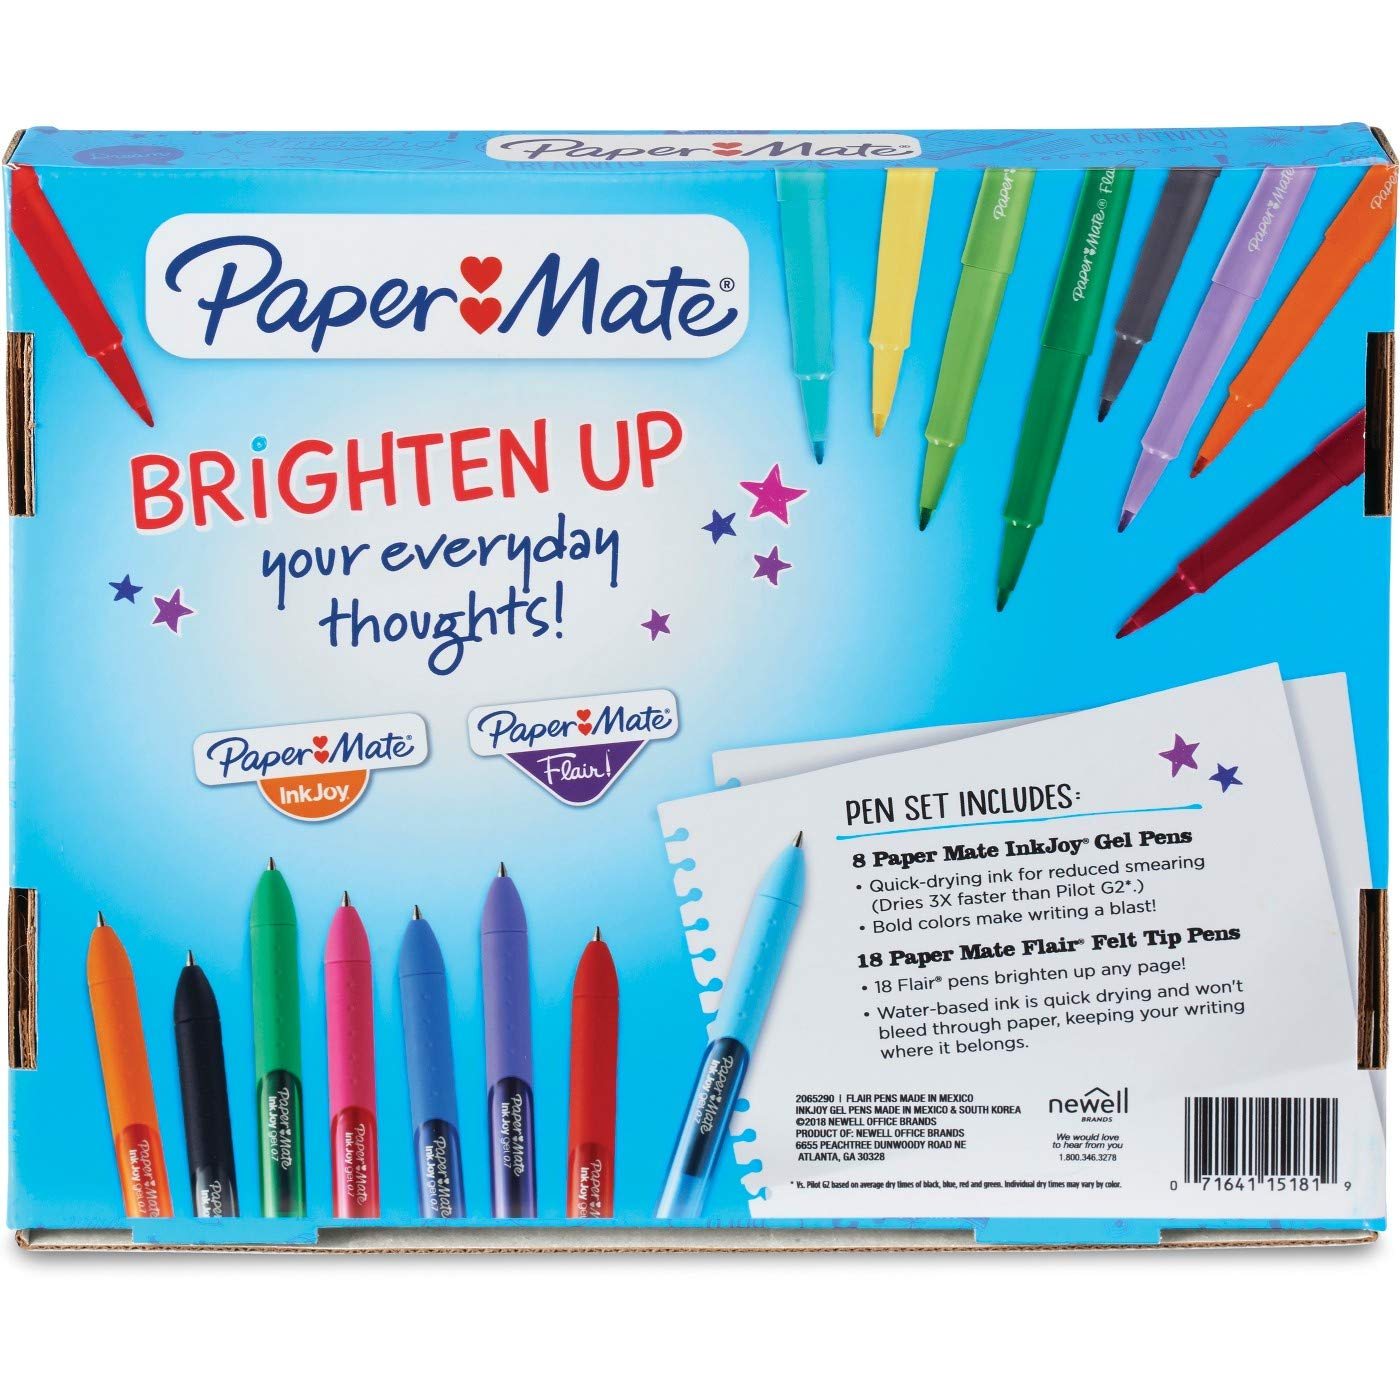 Paper Mate Rollerball Gel Pens 26ct - Multicolor by Paper Mate (Image #3)